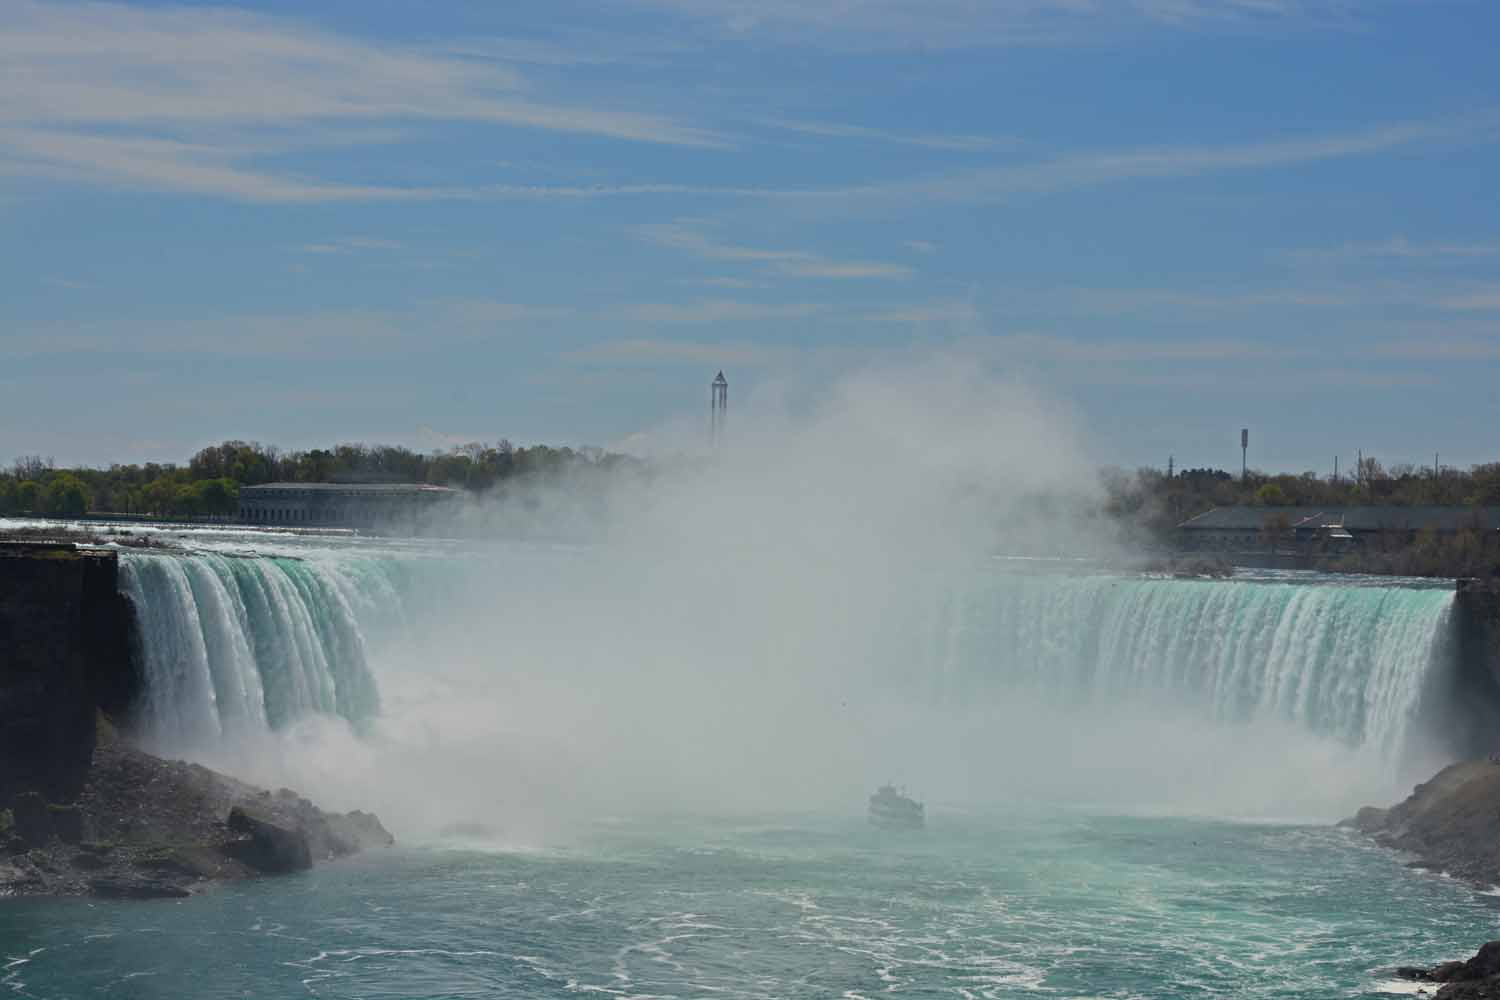 Niagara Falls is one place you will find plenty of tourists